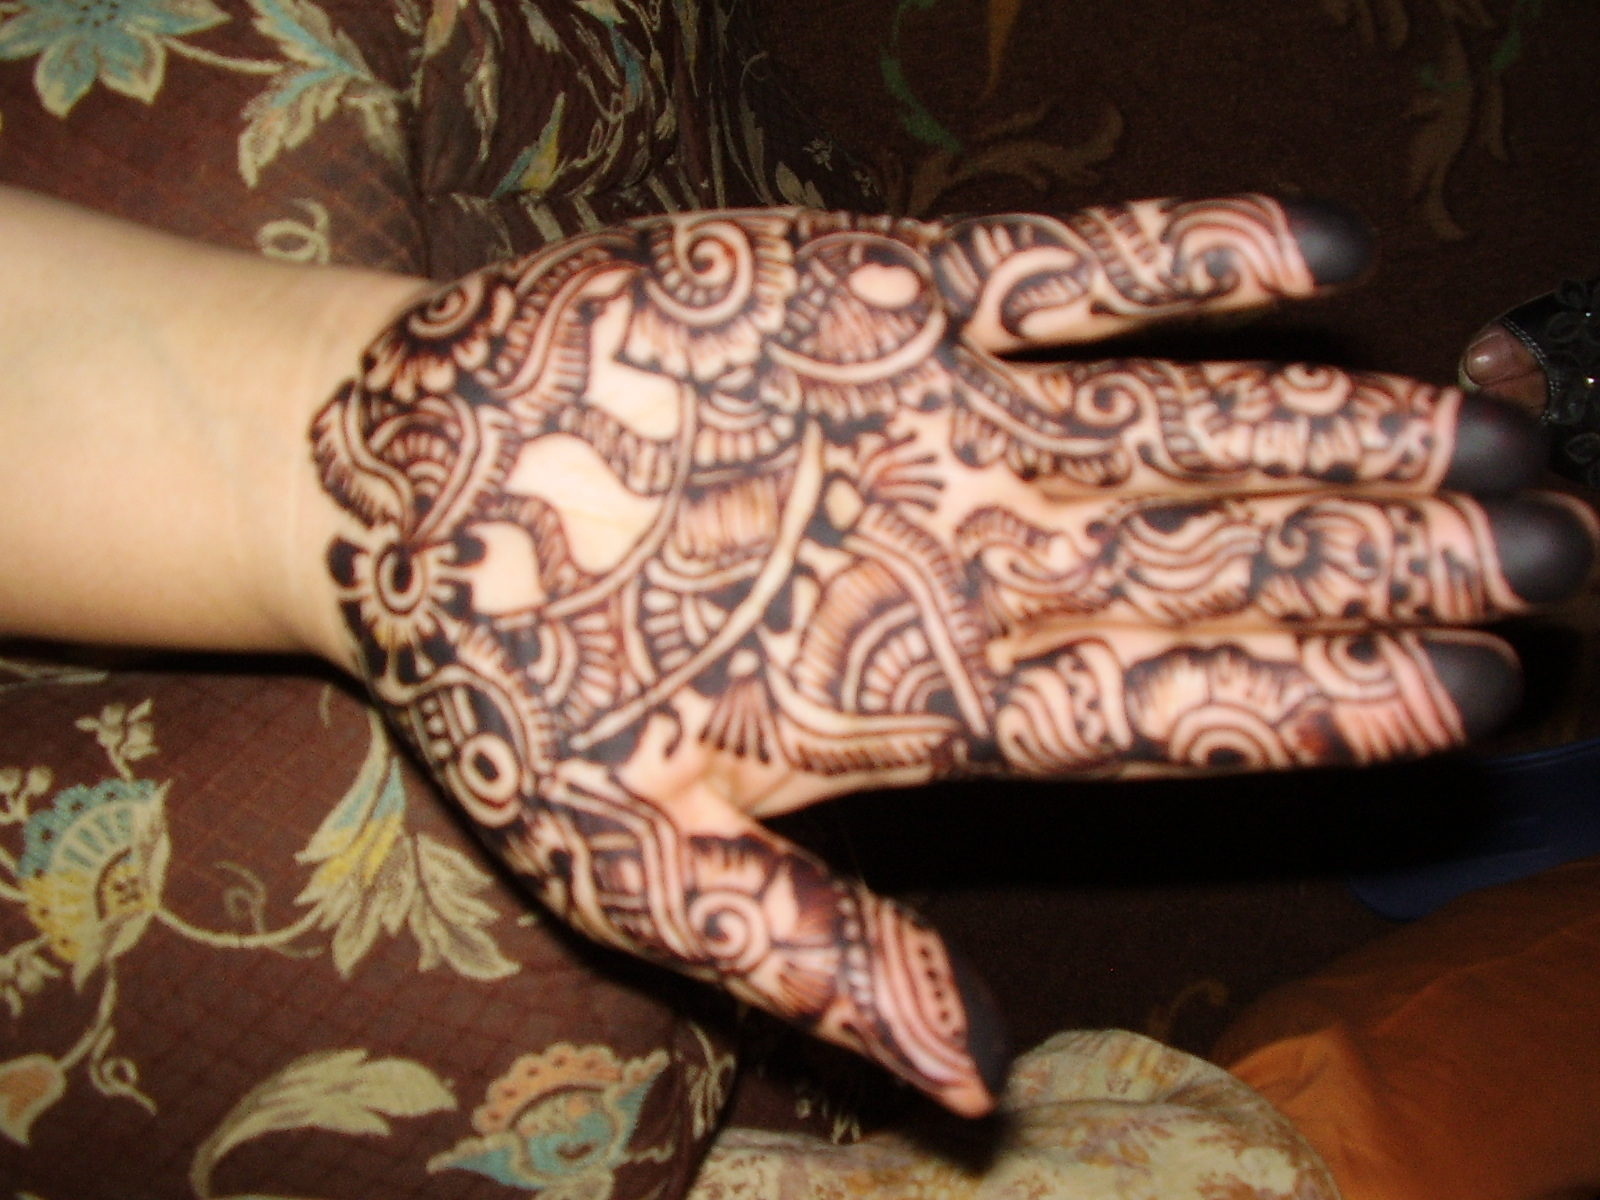 Youth Journalism International Artful Henna Designs Add Beauty To